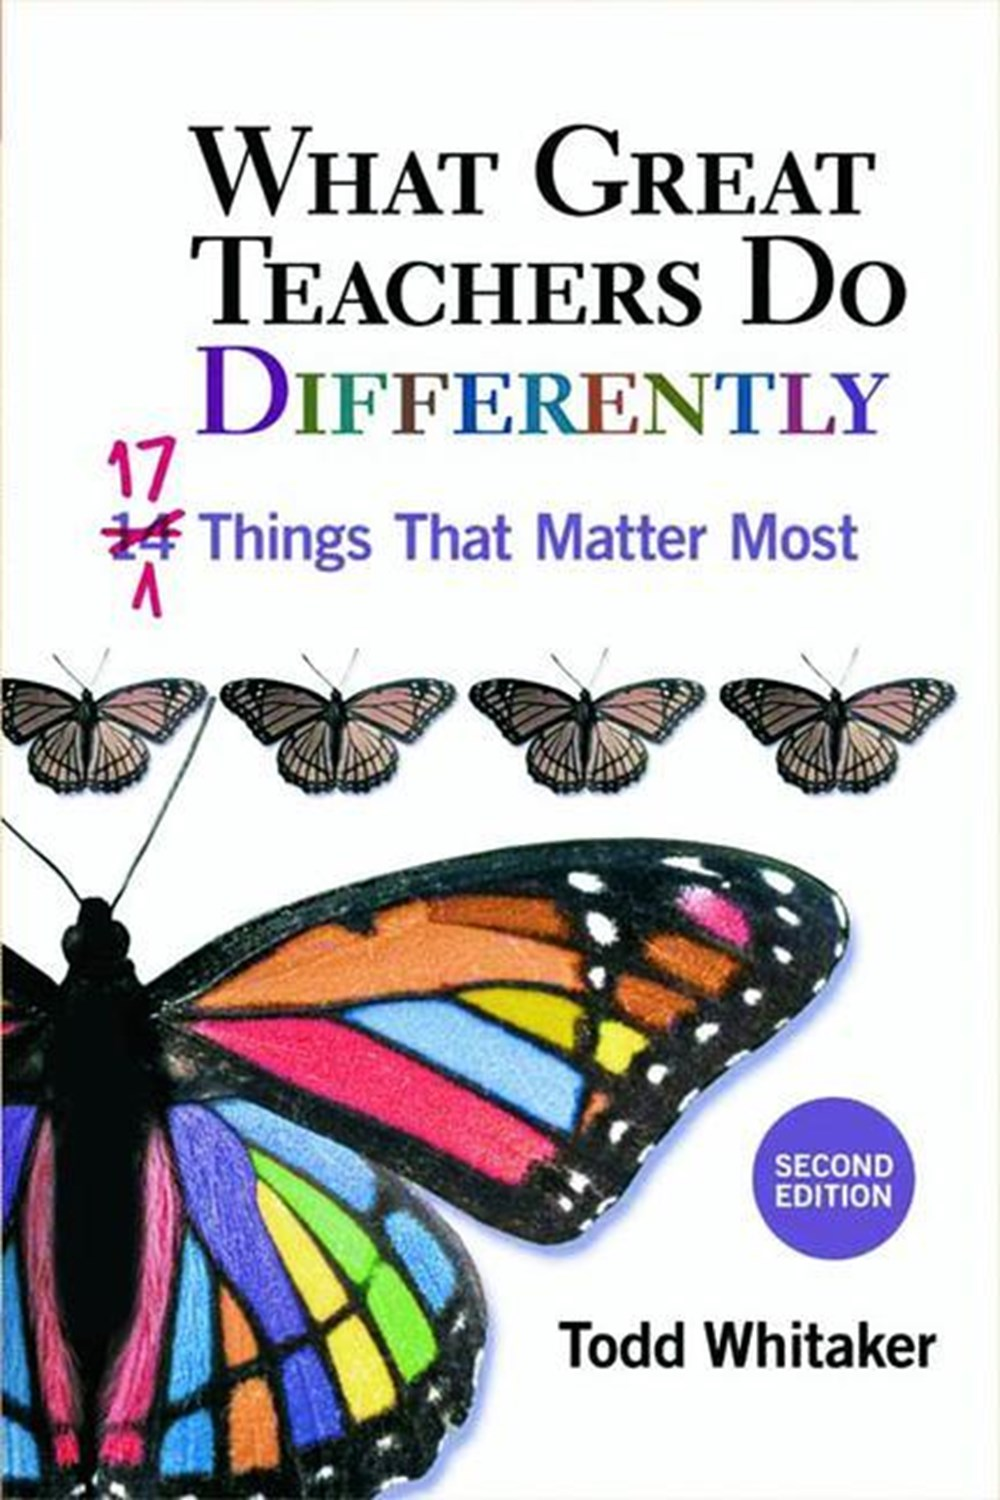 What Great Teachers Do Differently 17 Things That Matter Most